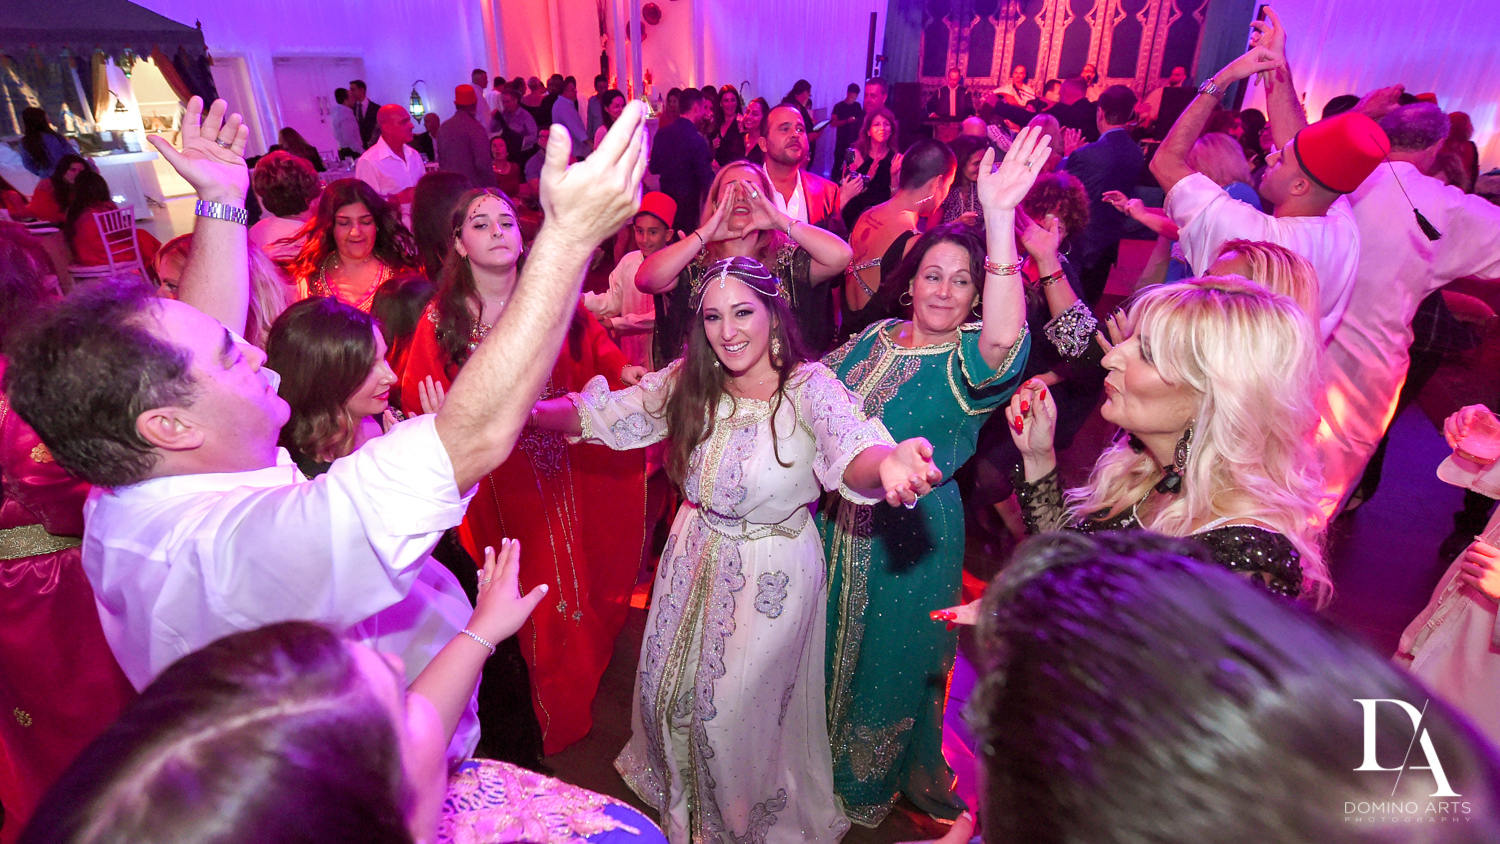 party pictures at Traditional Henna Party Photography at Lavan South Florida by Domino Arts